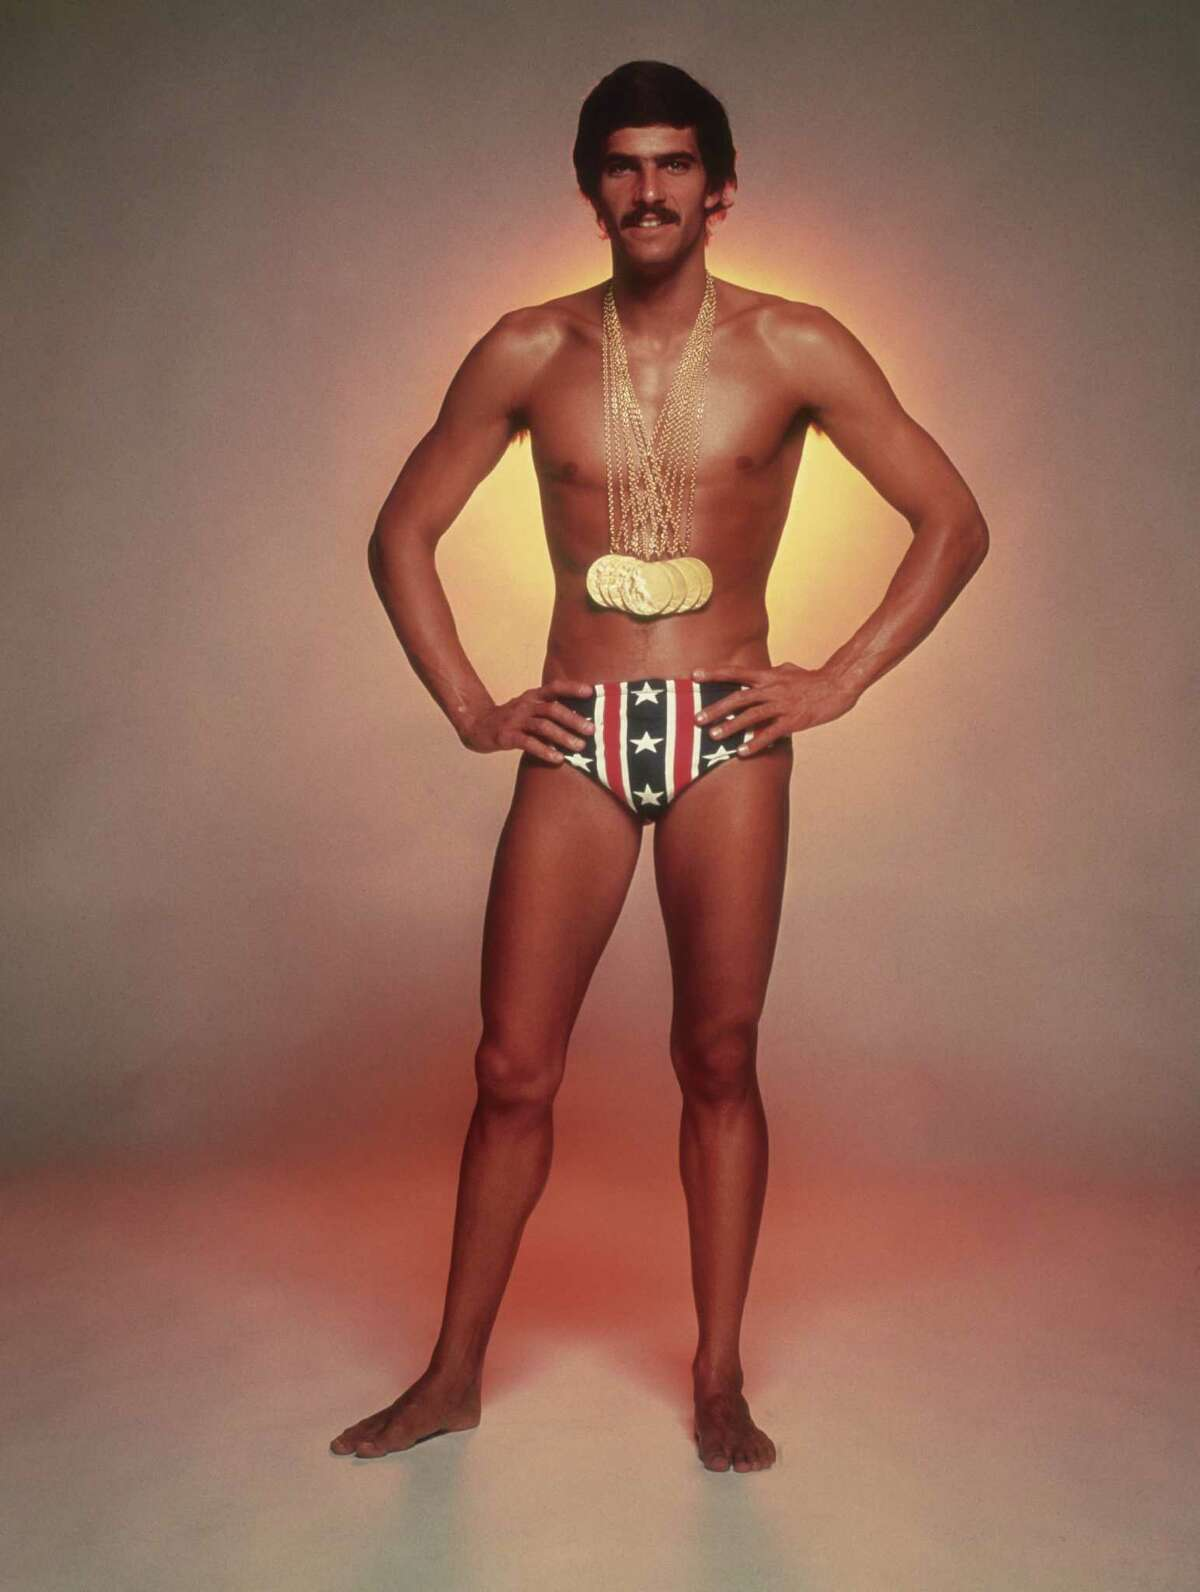 U.S. swimmer Mark Spitz won seven gold medals at the 1972 Munich Olympic Games while sporting a Speedo.